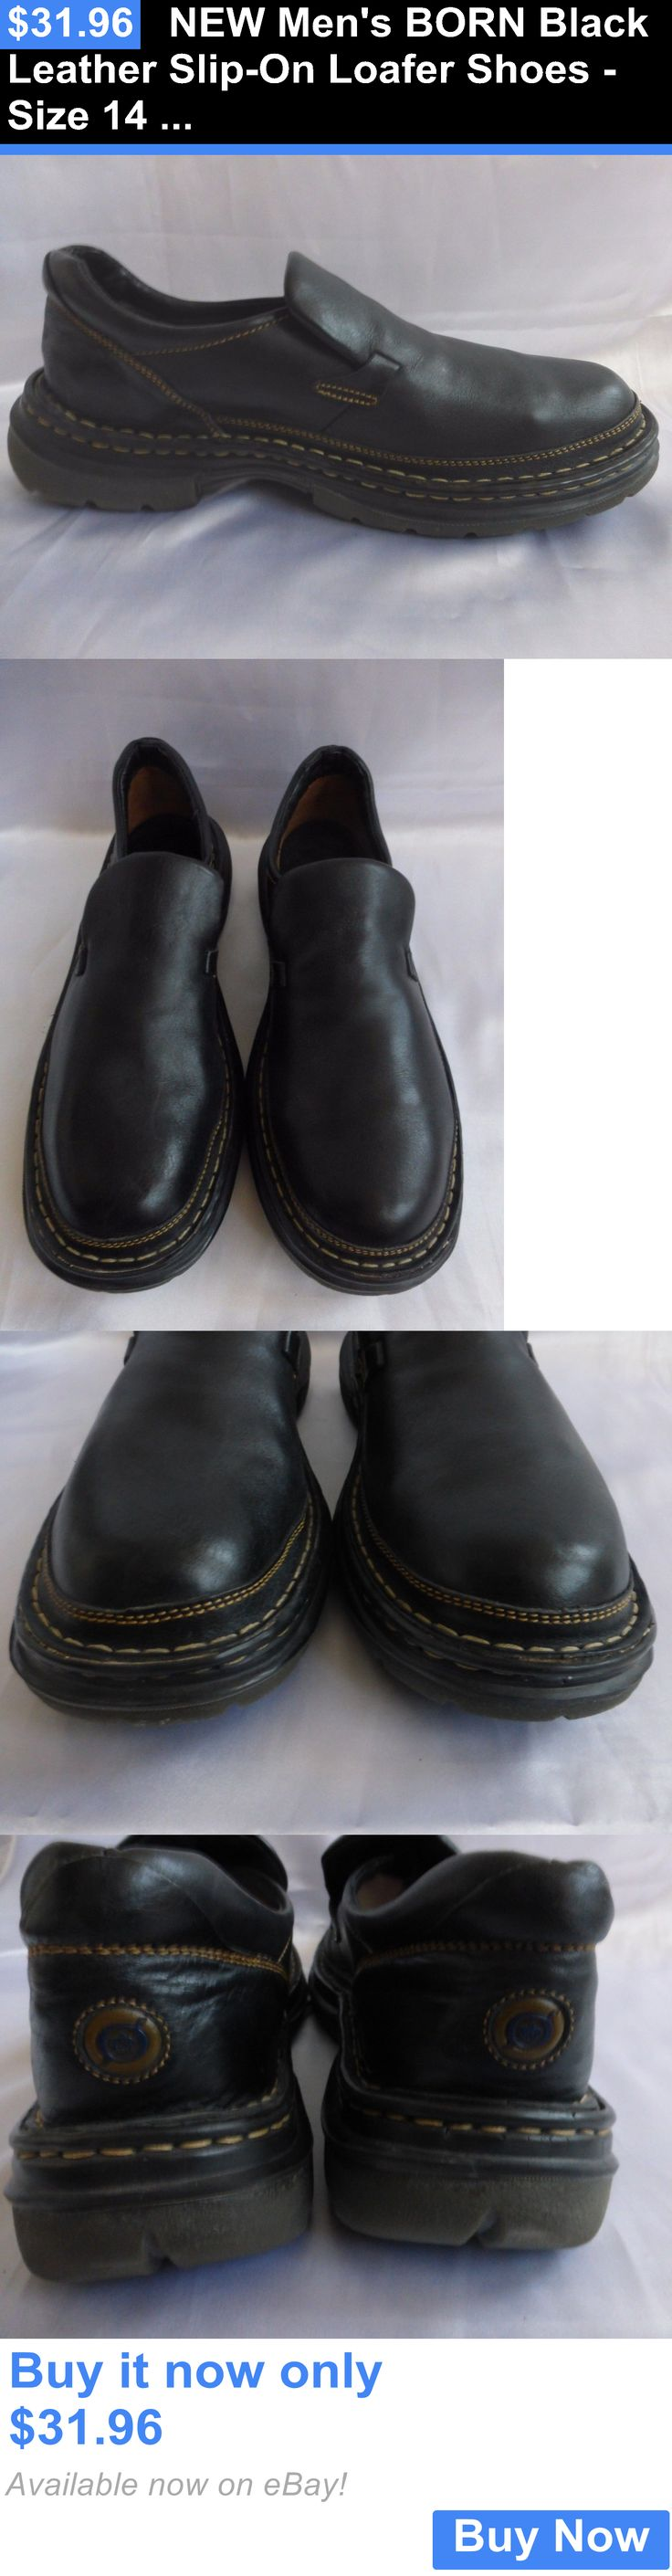 Men Shoes: New Mens Born Black Leather Slip-On Loafer Shoes - Size 14 Us BUY IT NOW ONLY: $31.96